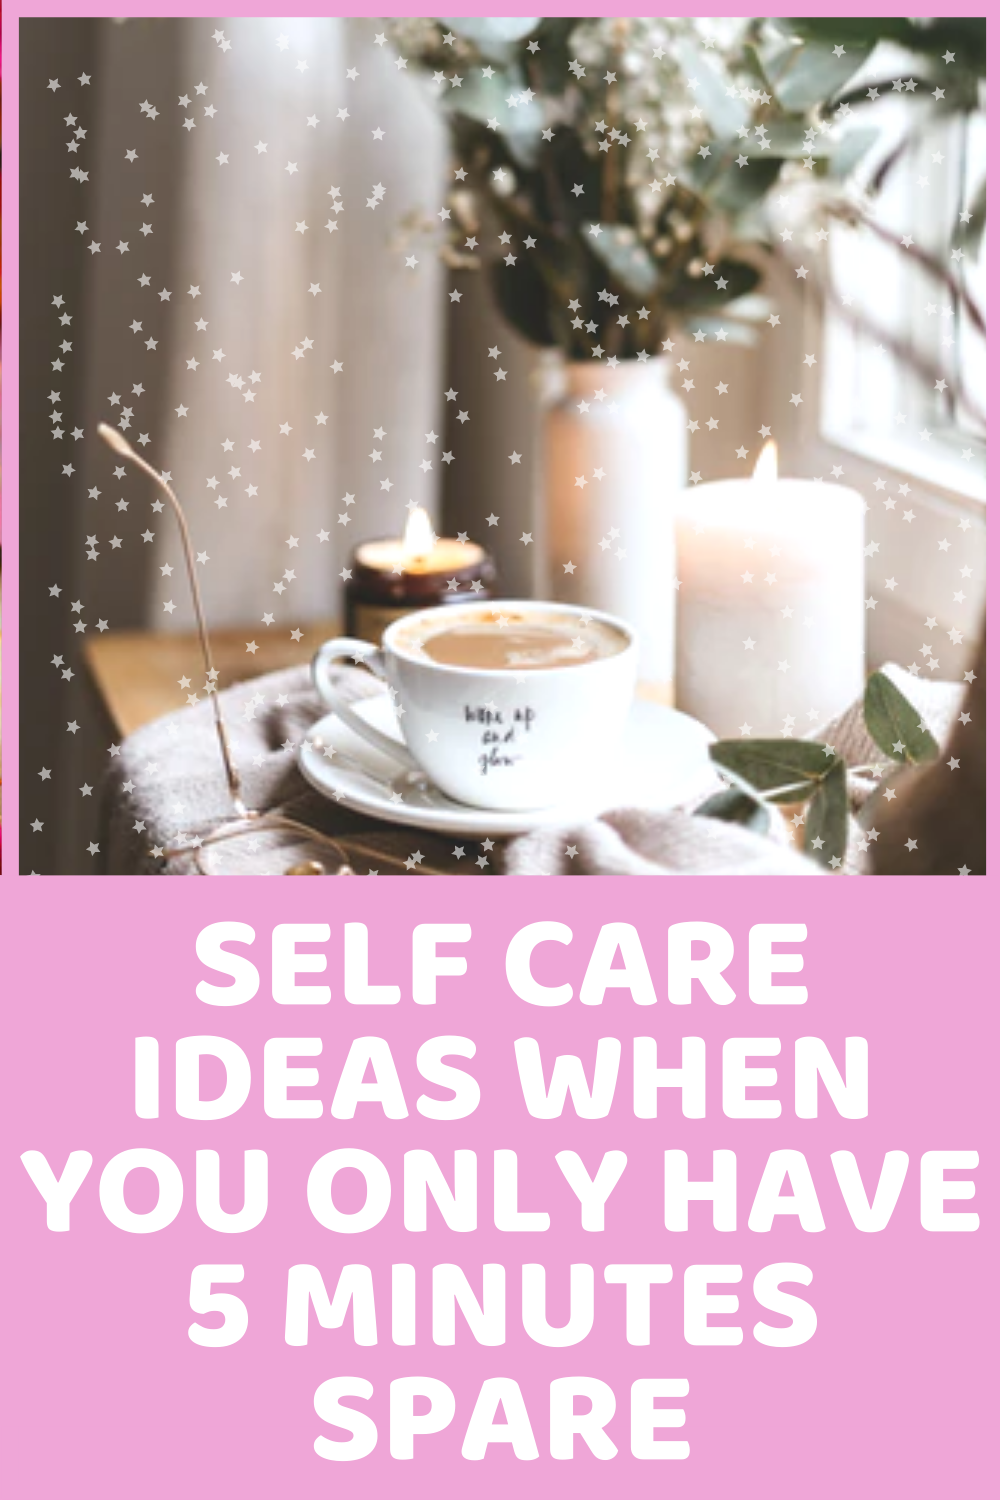 self care ideas when you only have 5 minutes spare